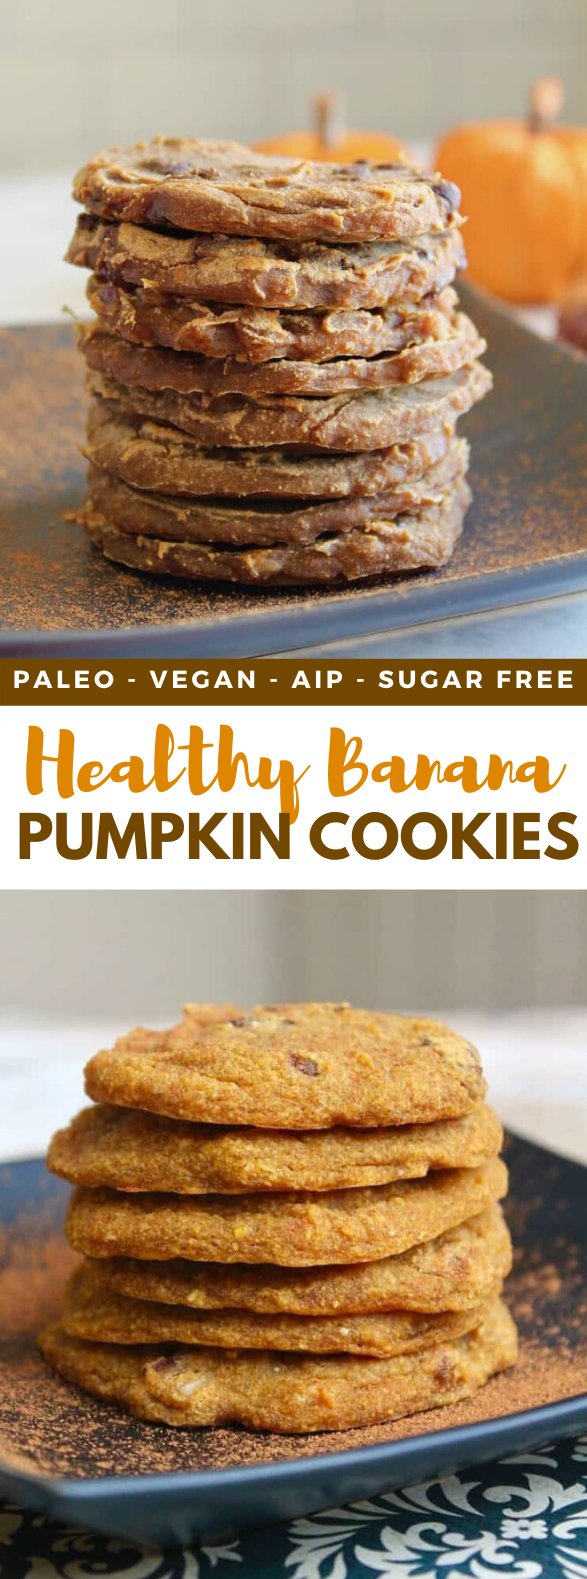 Healthy Banana Pumpkin Cookies (AIP, Paleo, Vegan, Sugar Free) #diet #fallrecipes